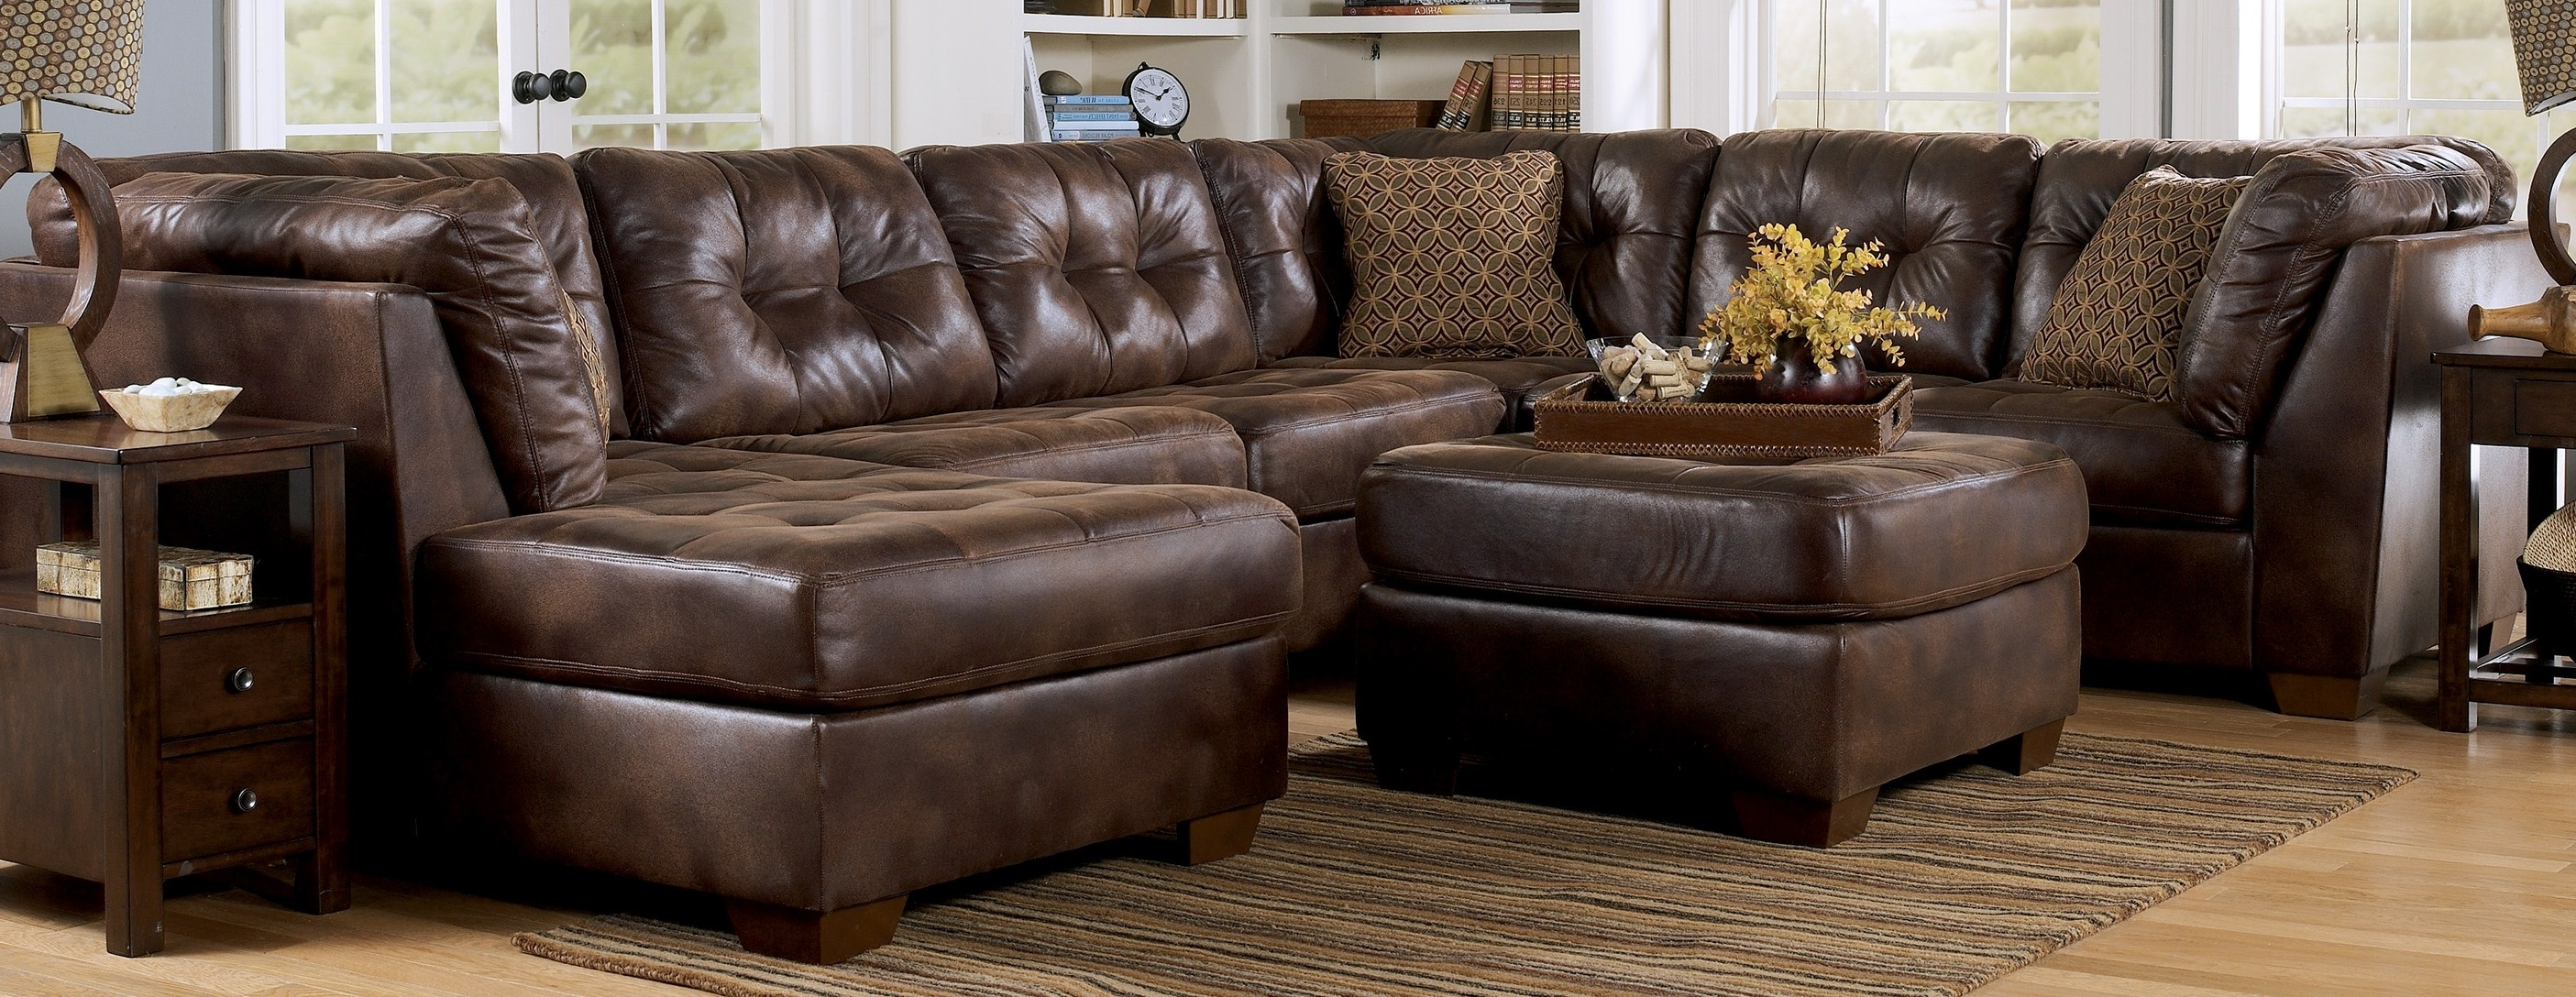 High End Leather Sectional Sofas Inside 2017 Big Lots Recliners Ashley Furniture Sectional Sofas Cheap (View 6 of 15)